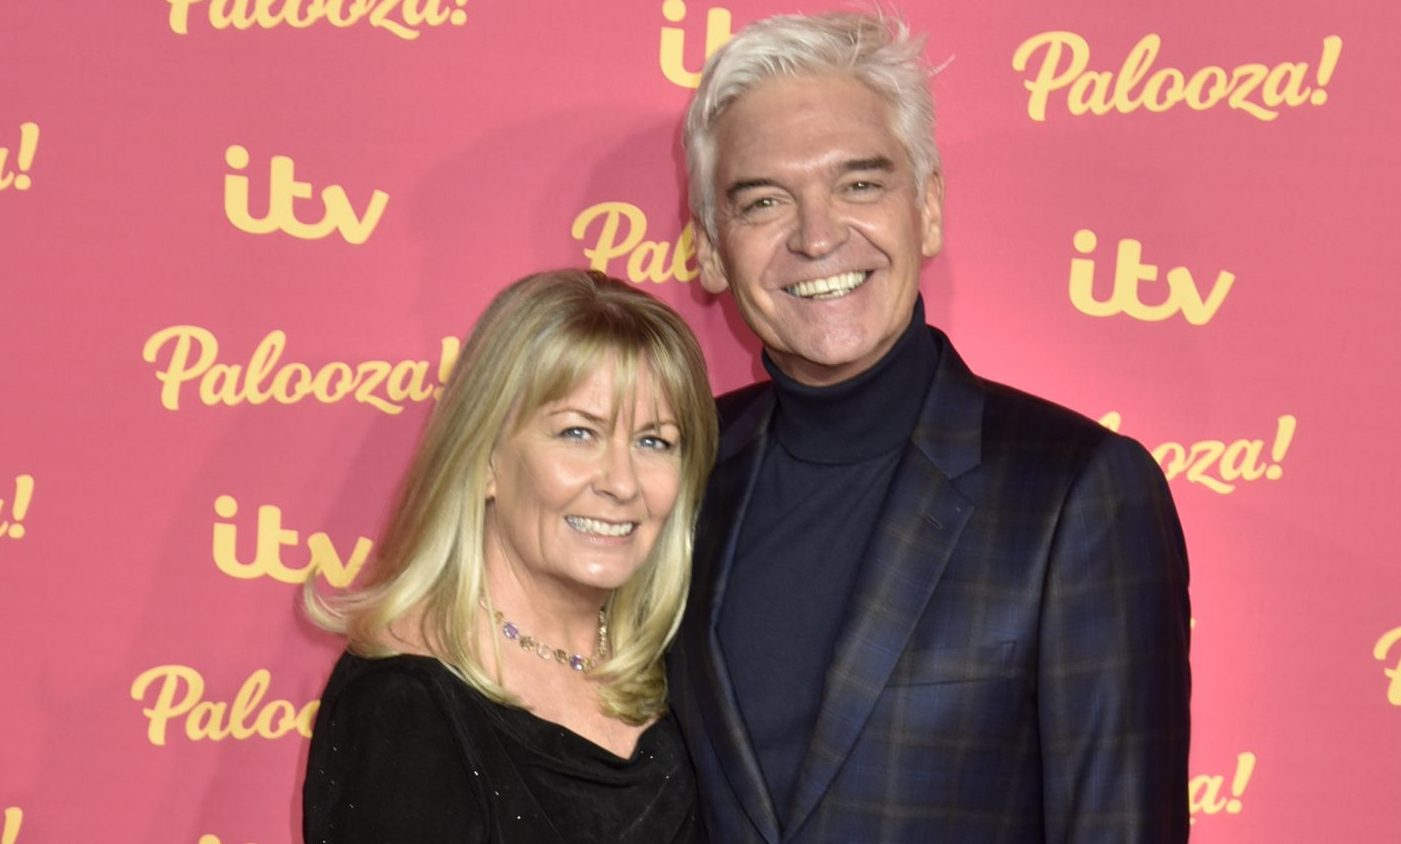 Phillip Schofield's wife Stephanie Lowe vows to stand by him